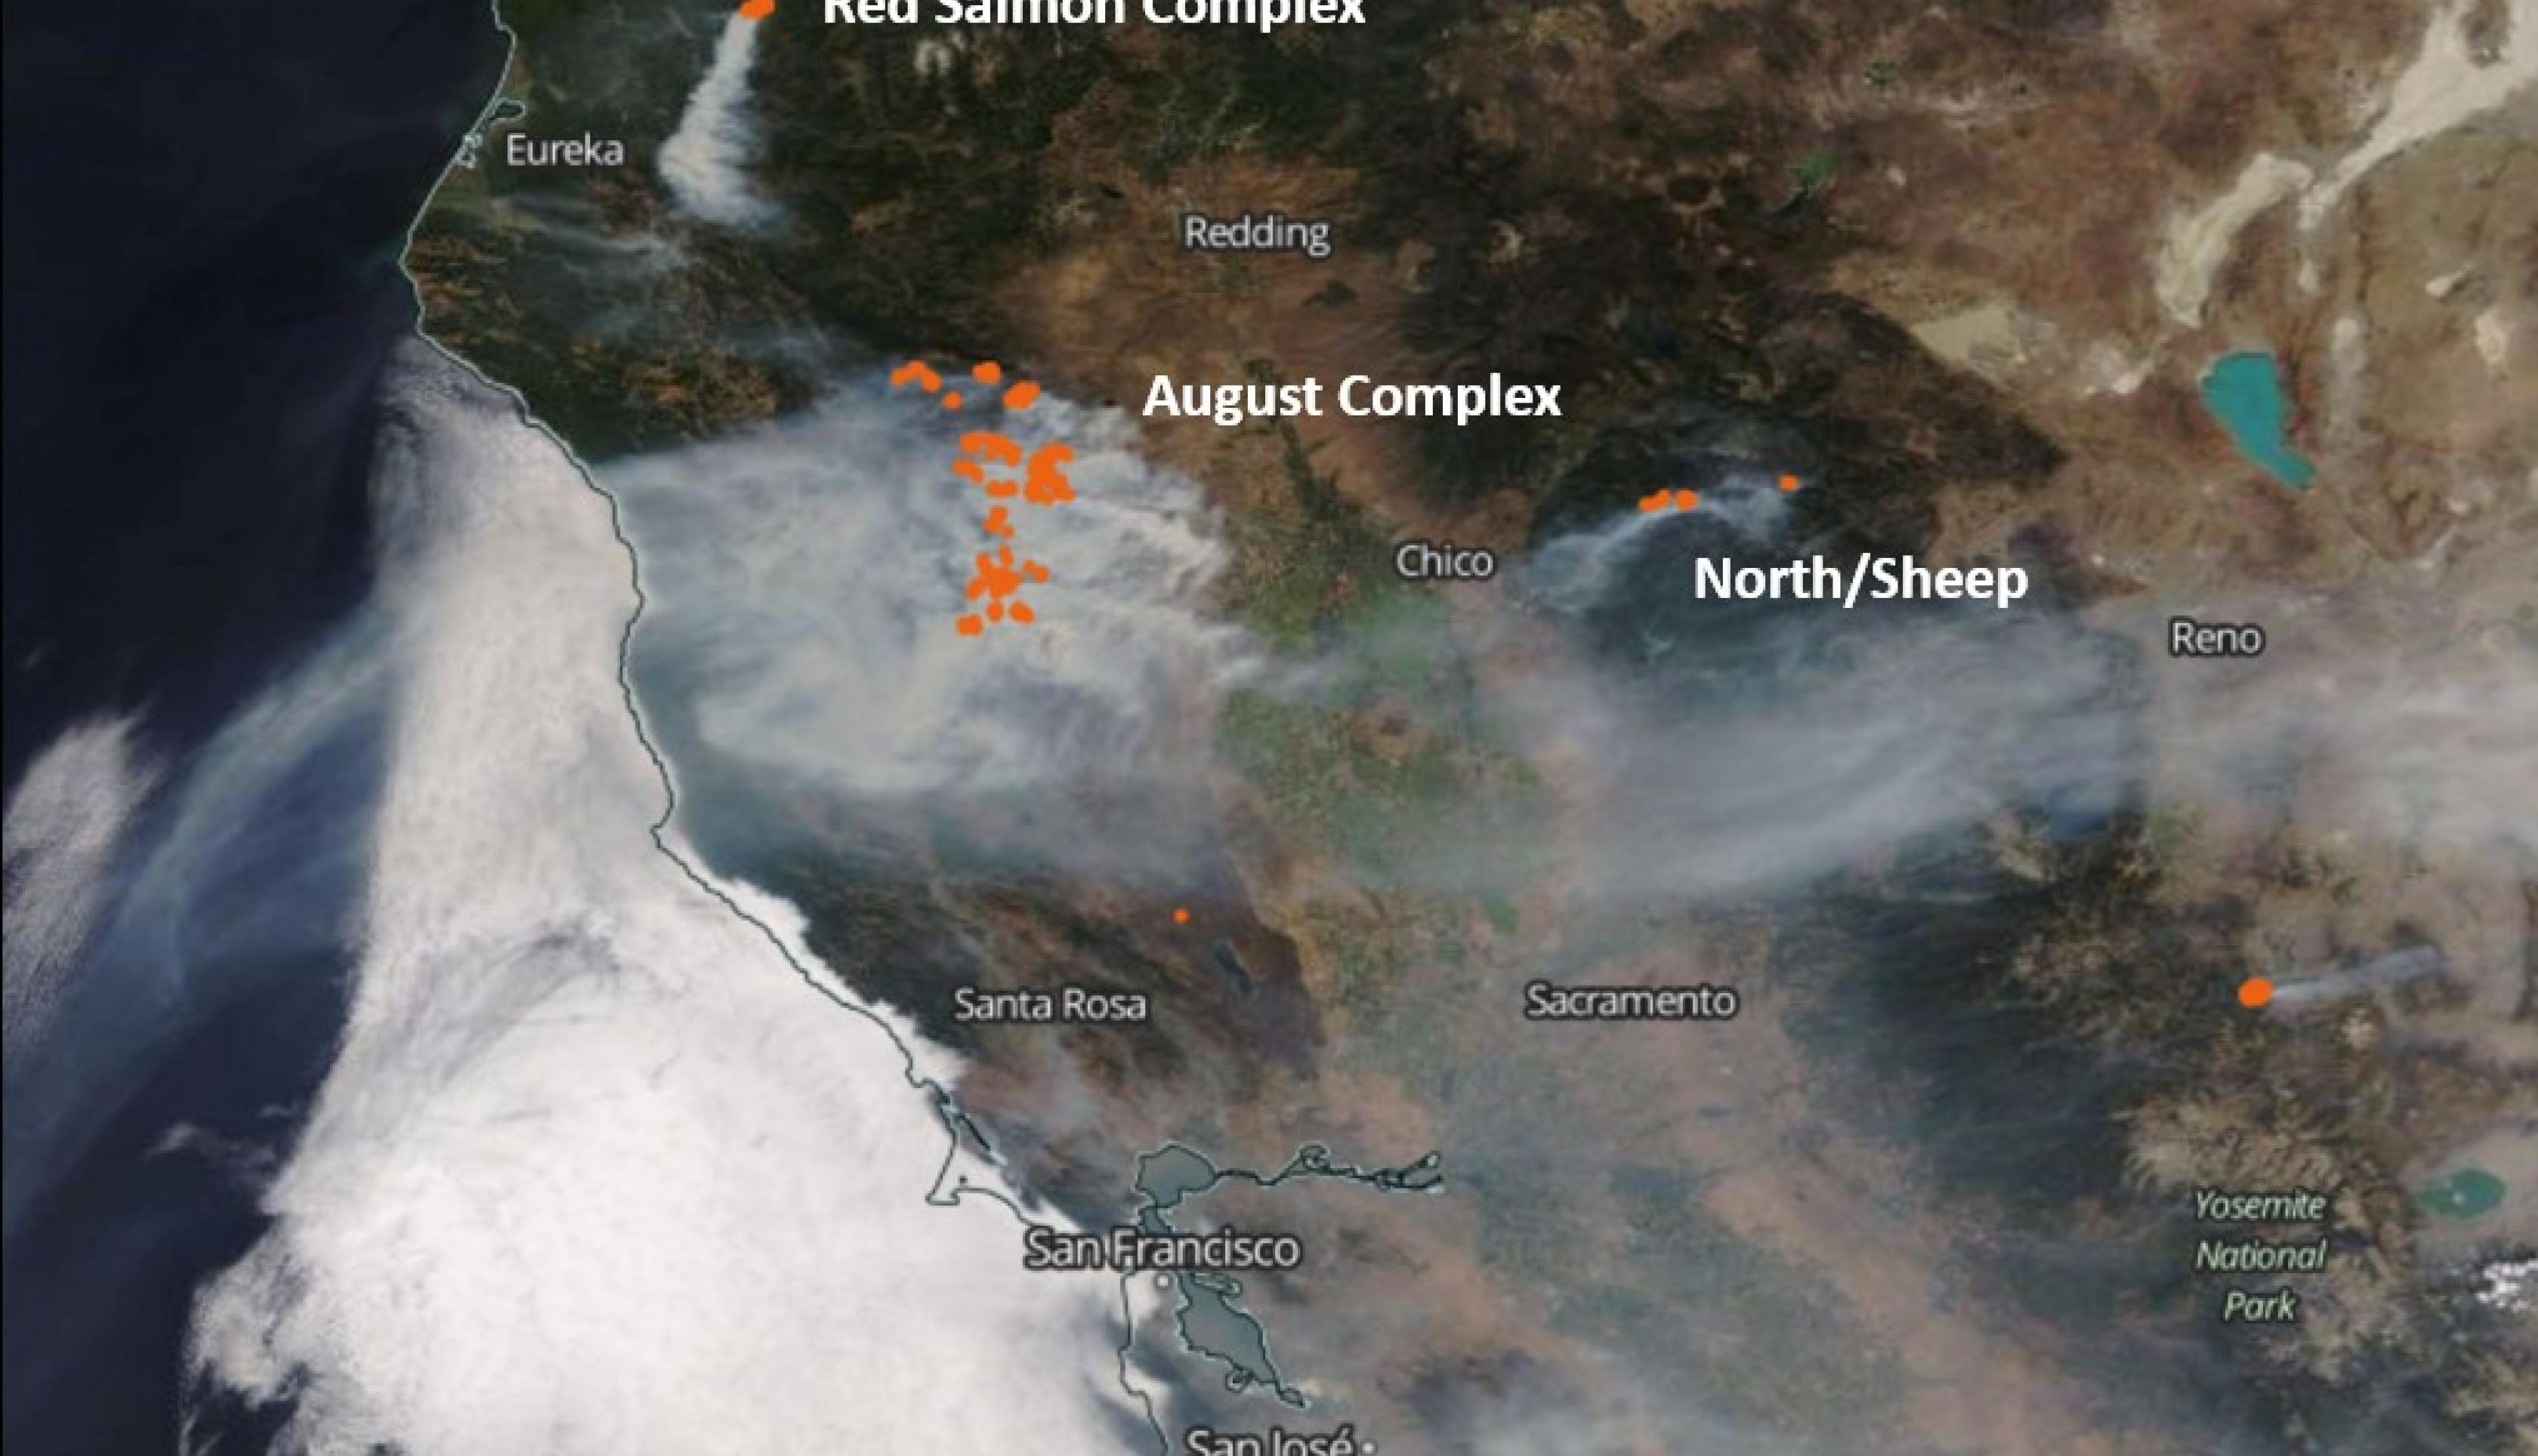 MODIS data from California fires